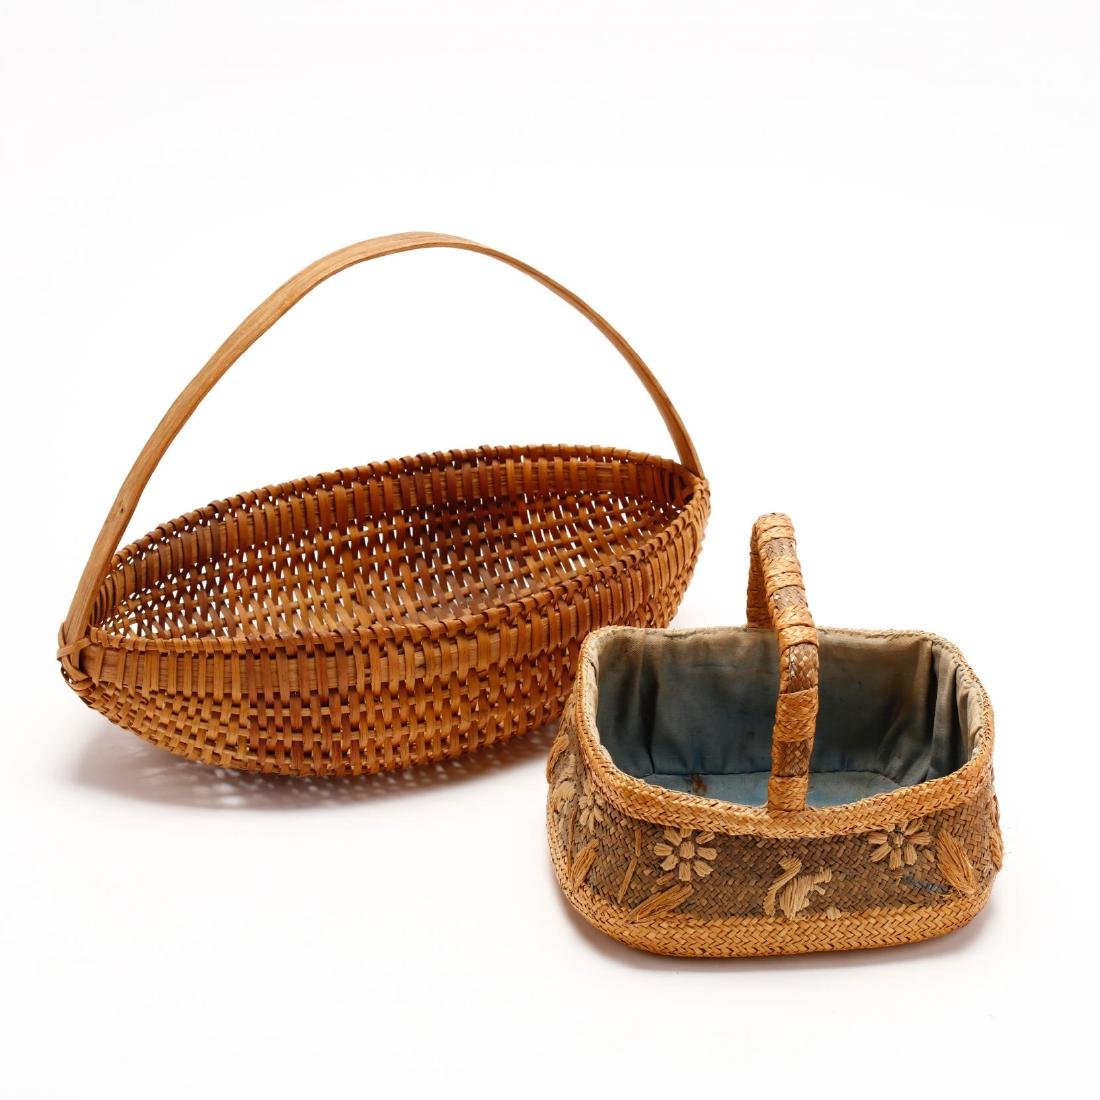 Two Vintage Native American Baskets - 8